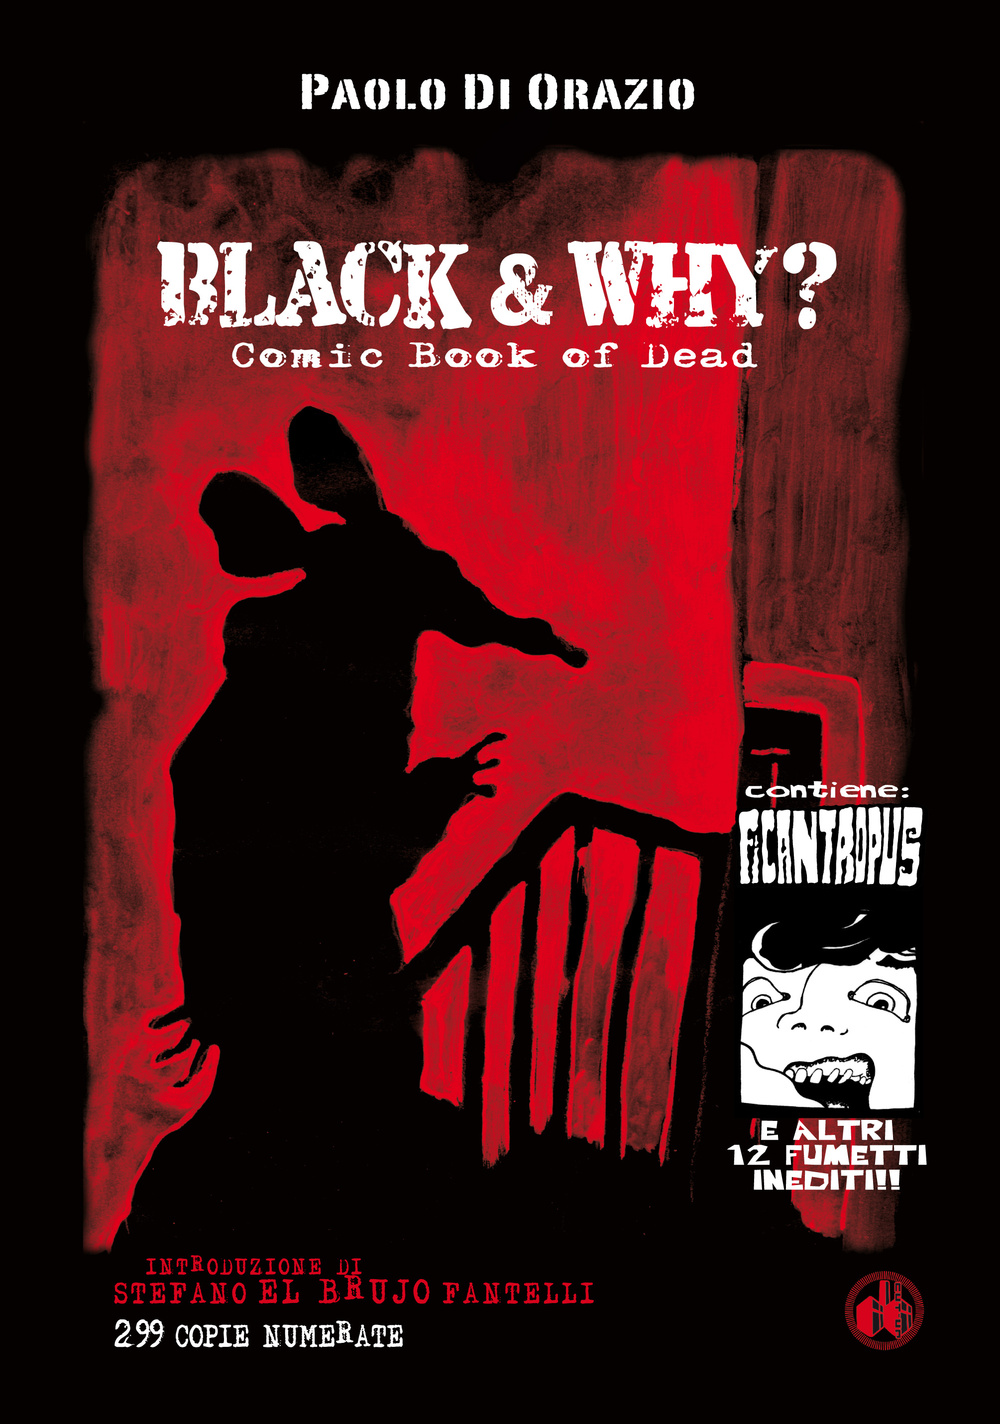 Black & why? Comicbook of dead